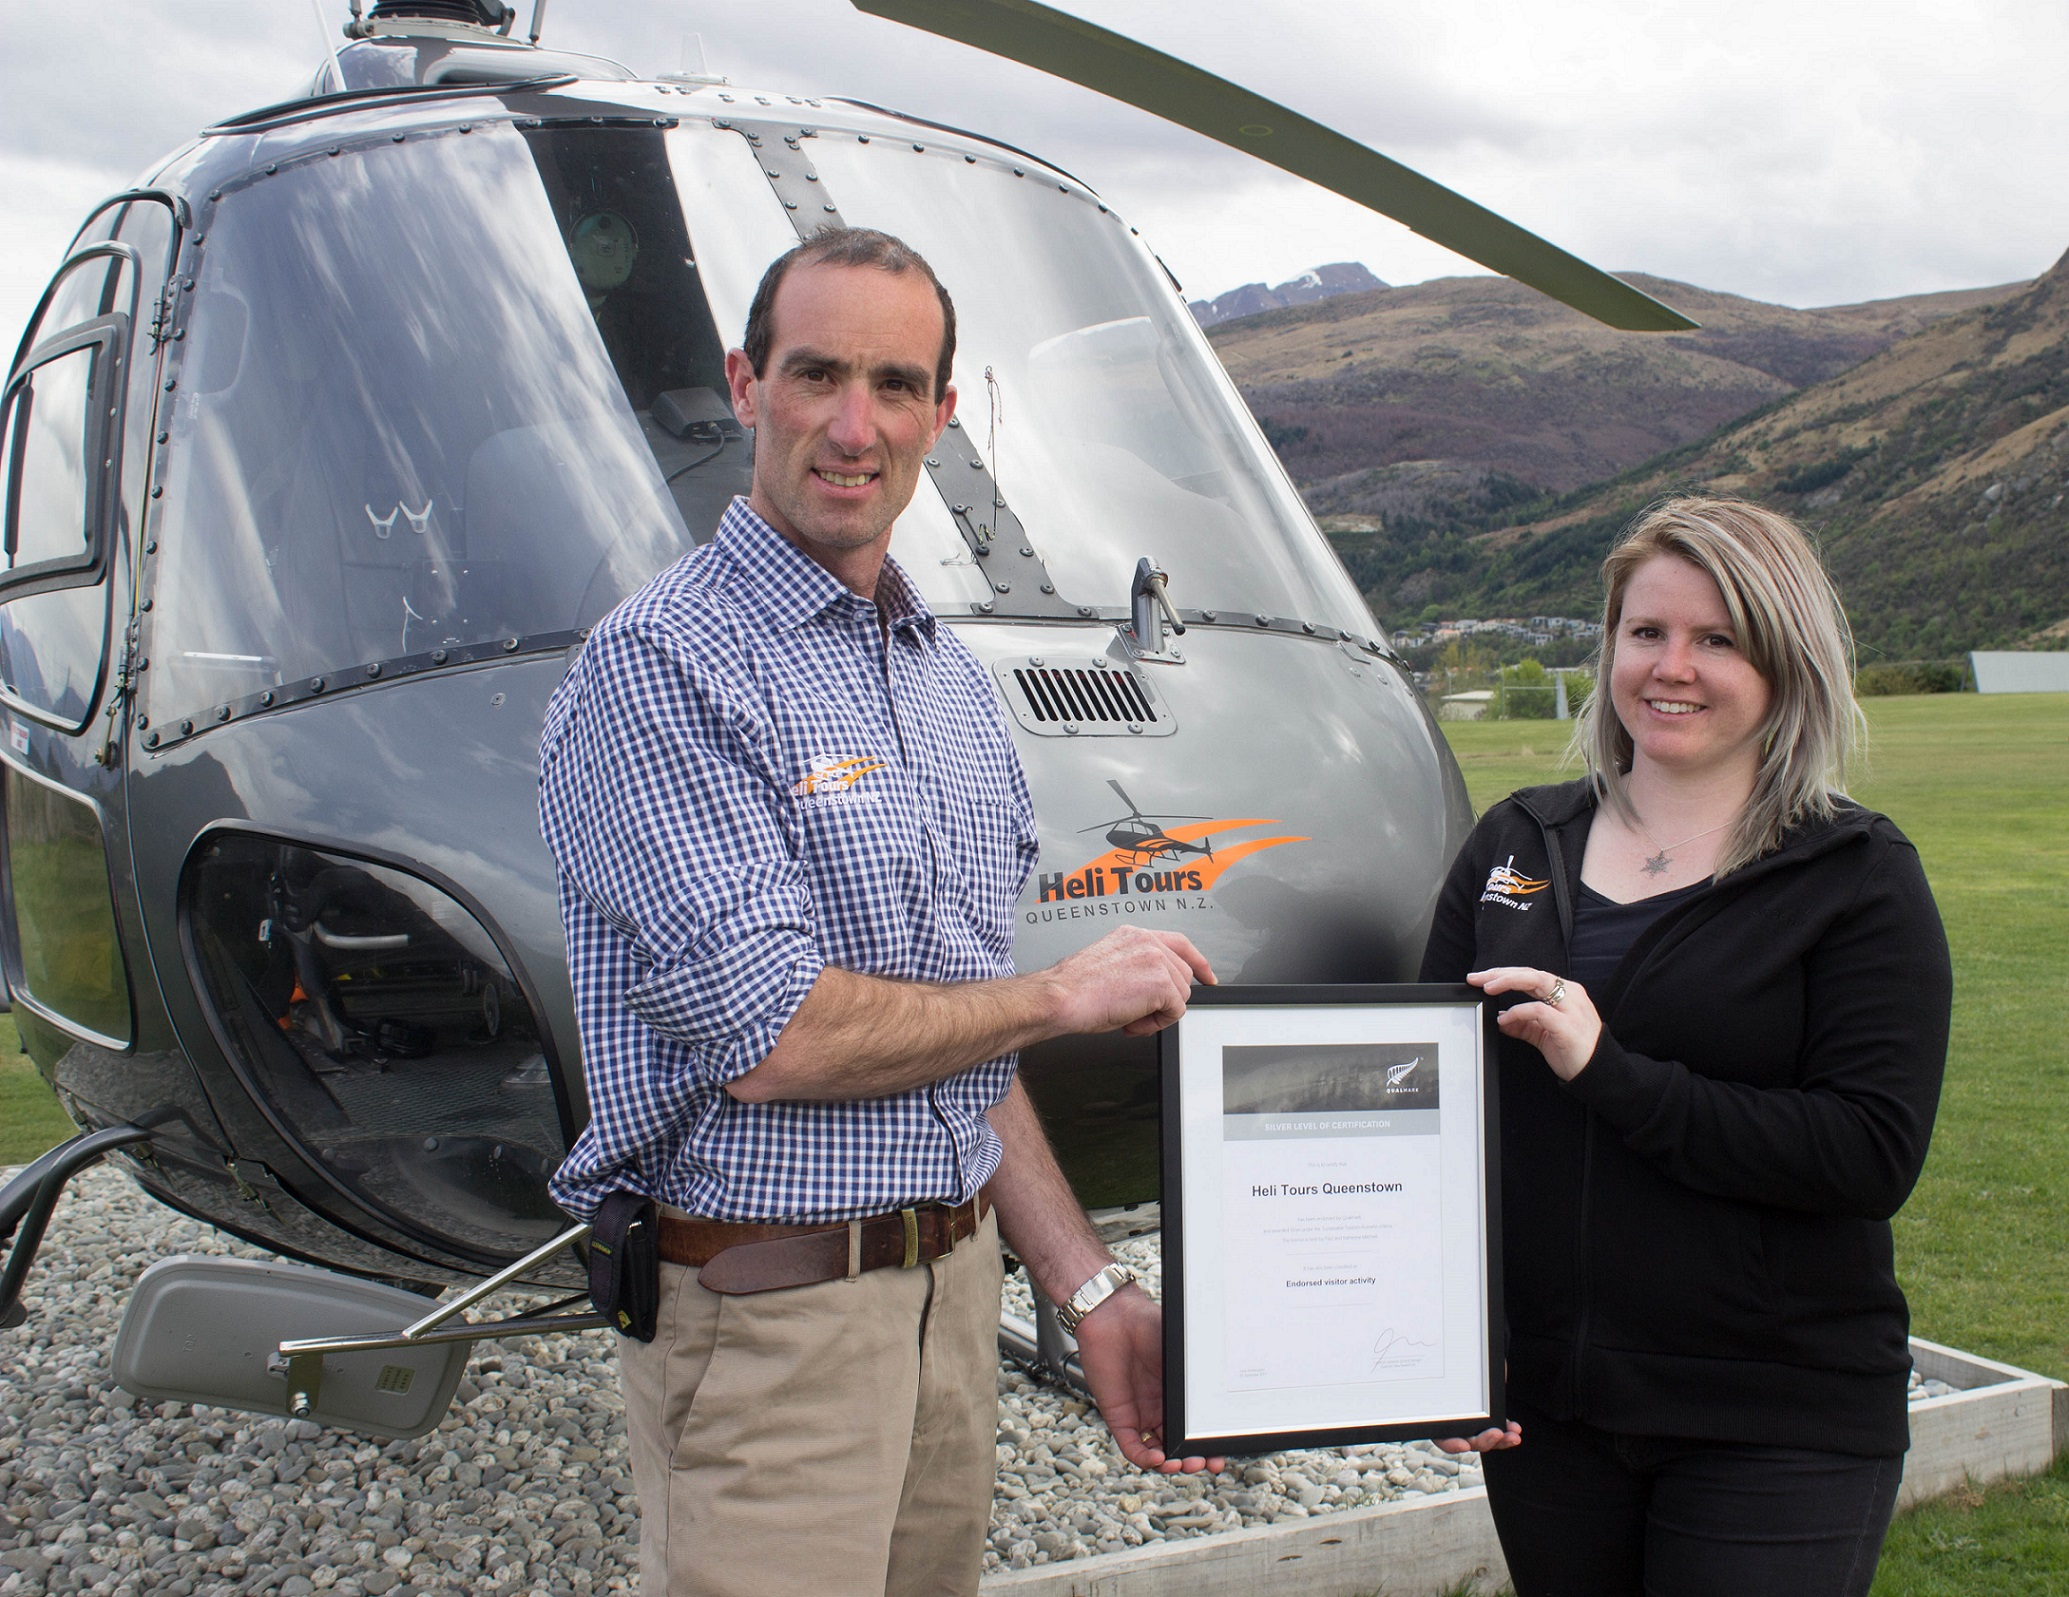 Heli Tours owner Paul Mitchell and Base Manager Jaime Flemming celebrate their Qualmark Silver award